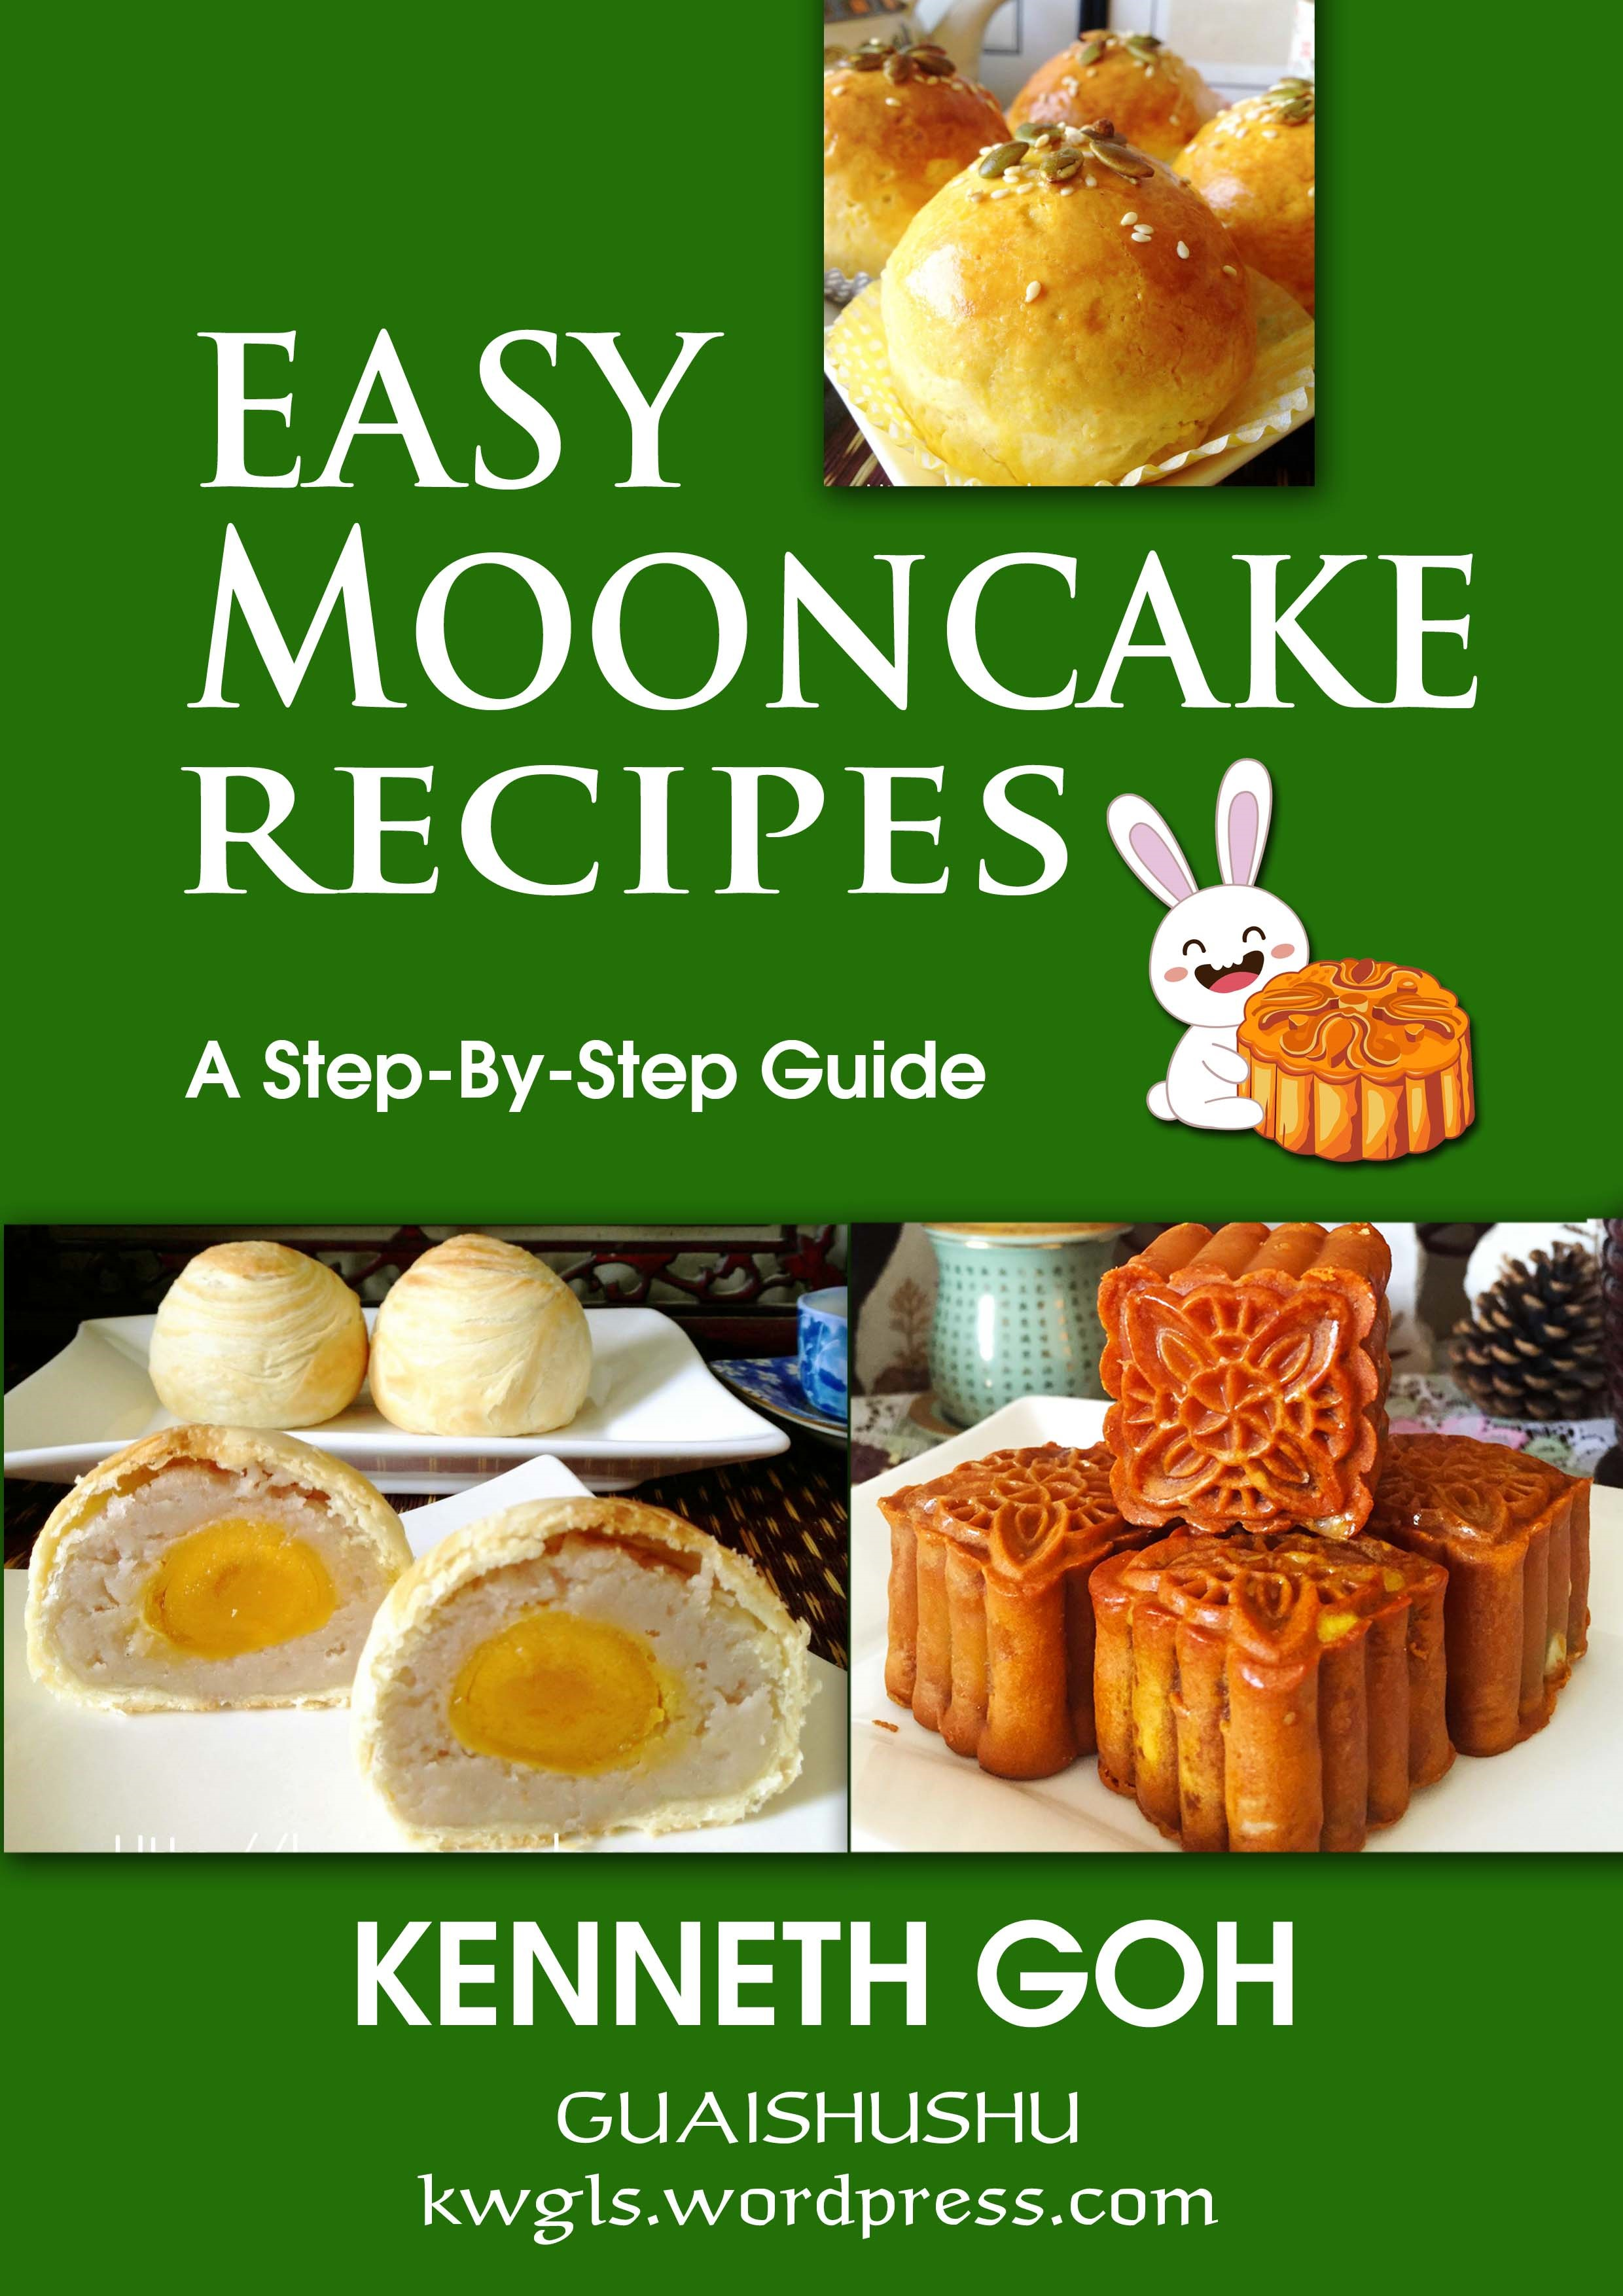 Easy Mooncake Images : Easy Mooncake Recipes - A Step By Step Guide